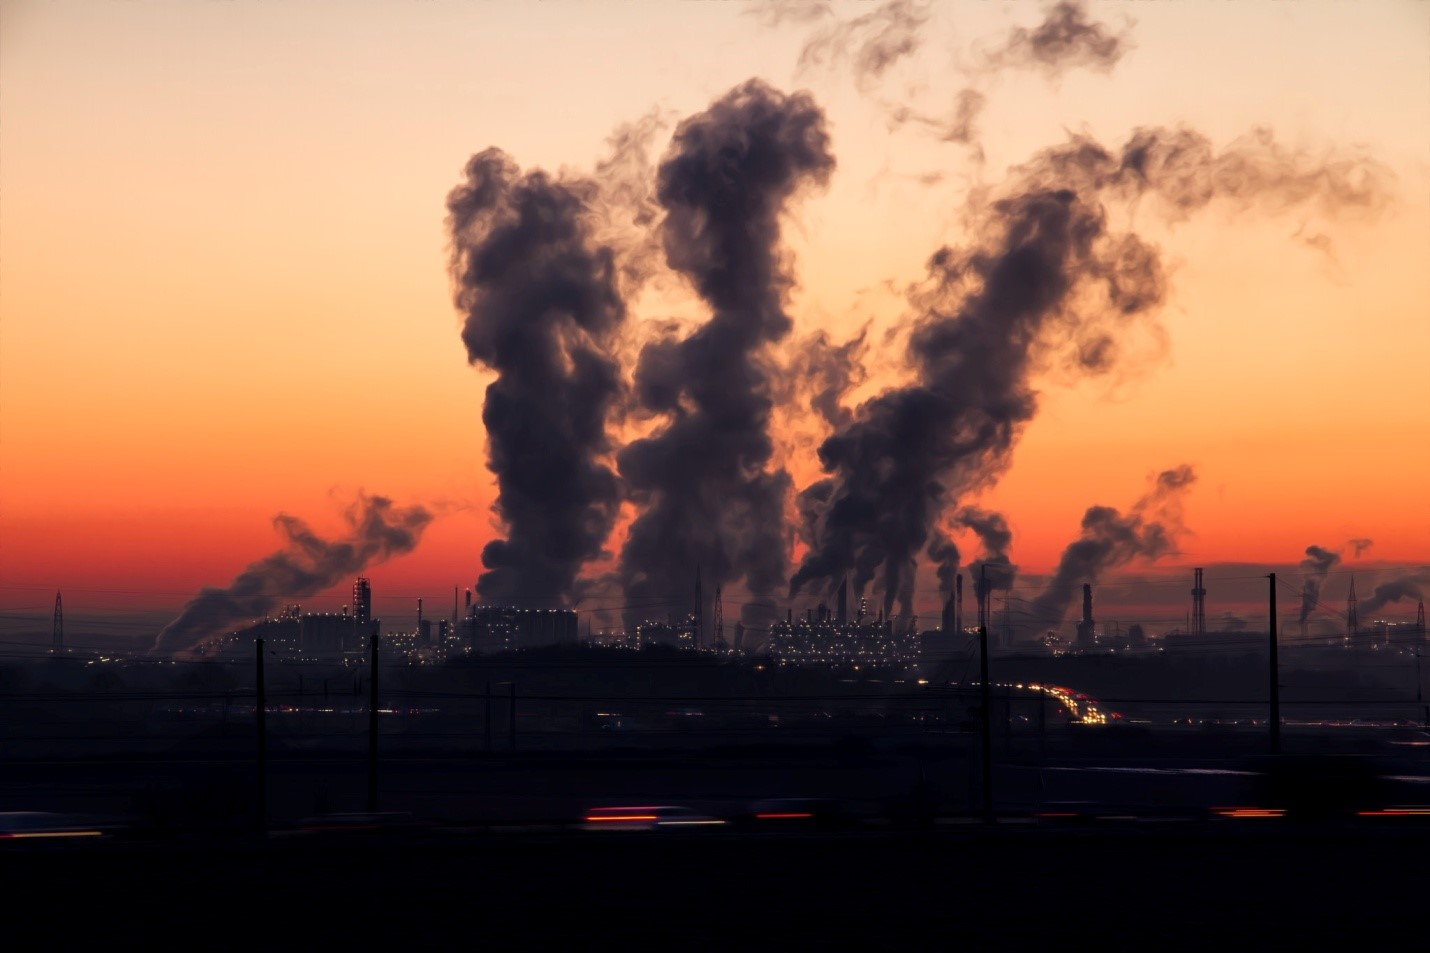 Air pollution contributes to global warming and poses health risks